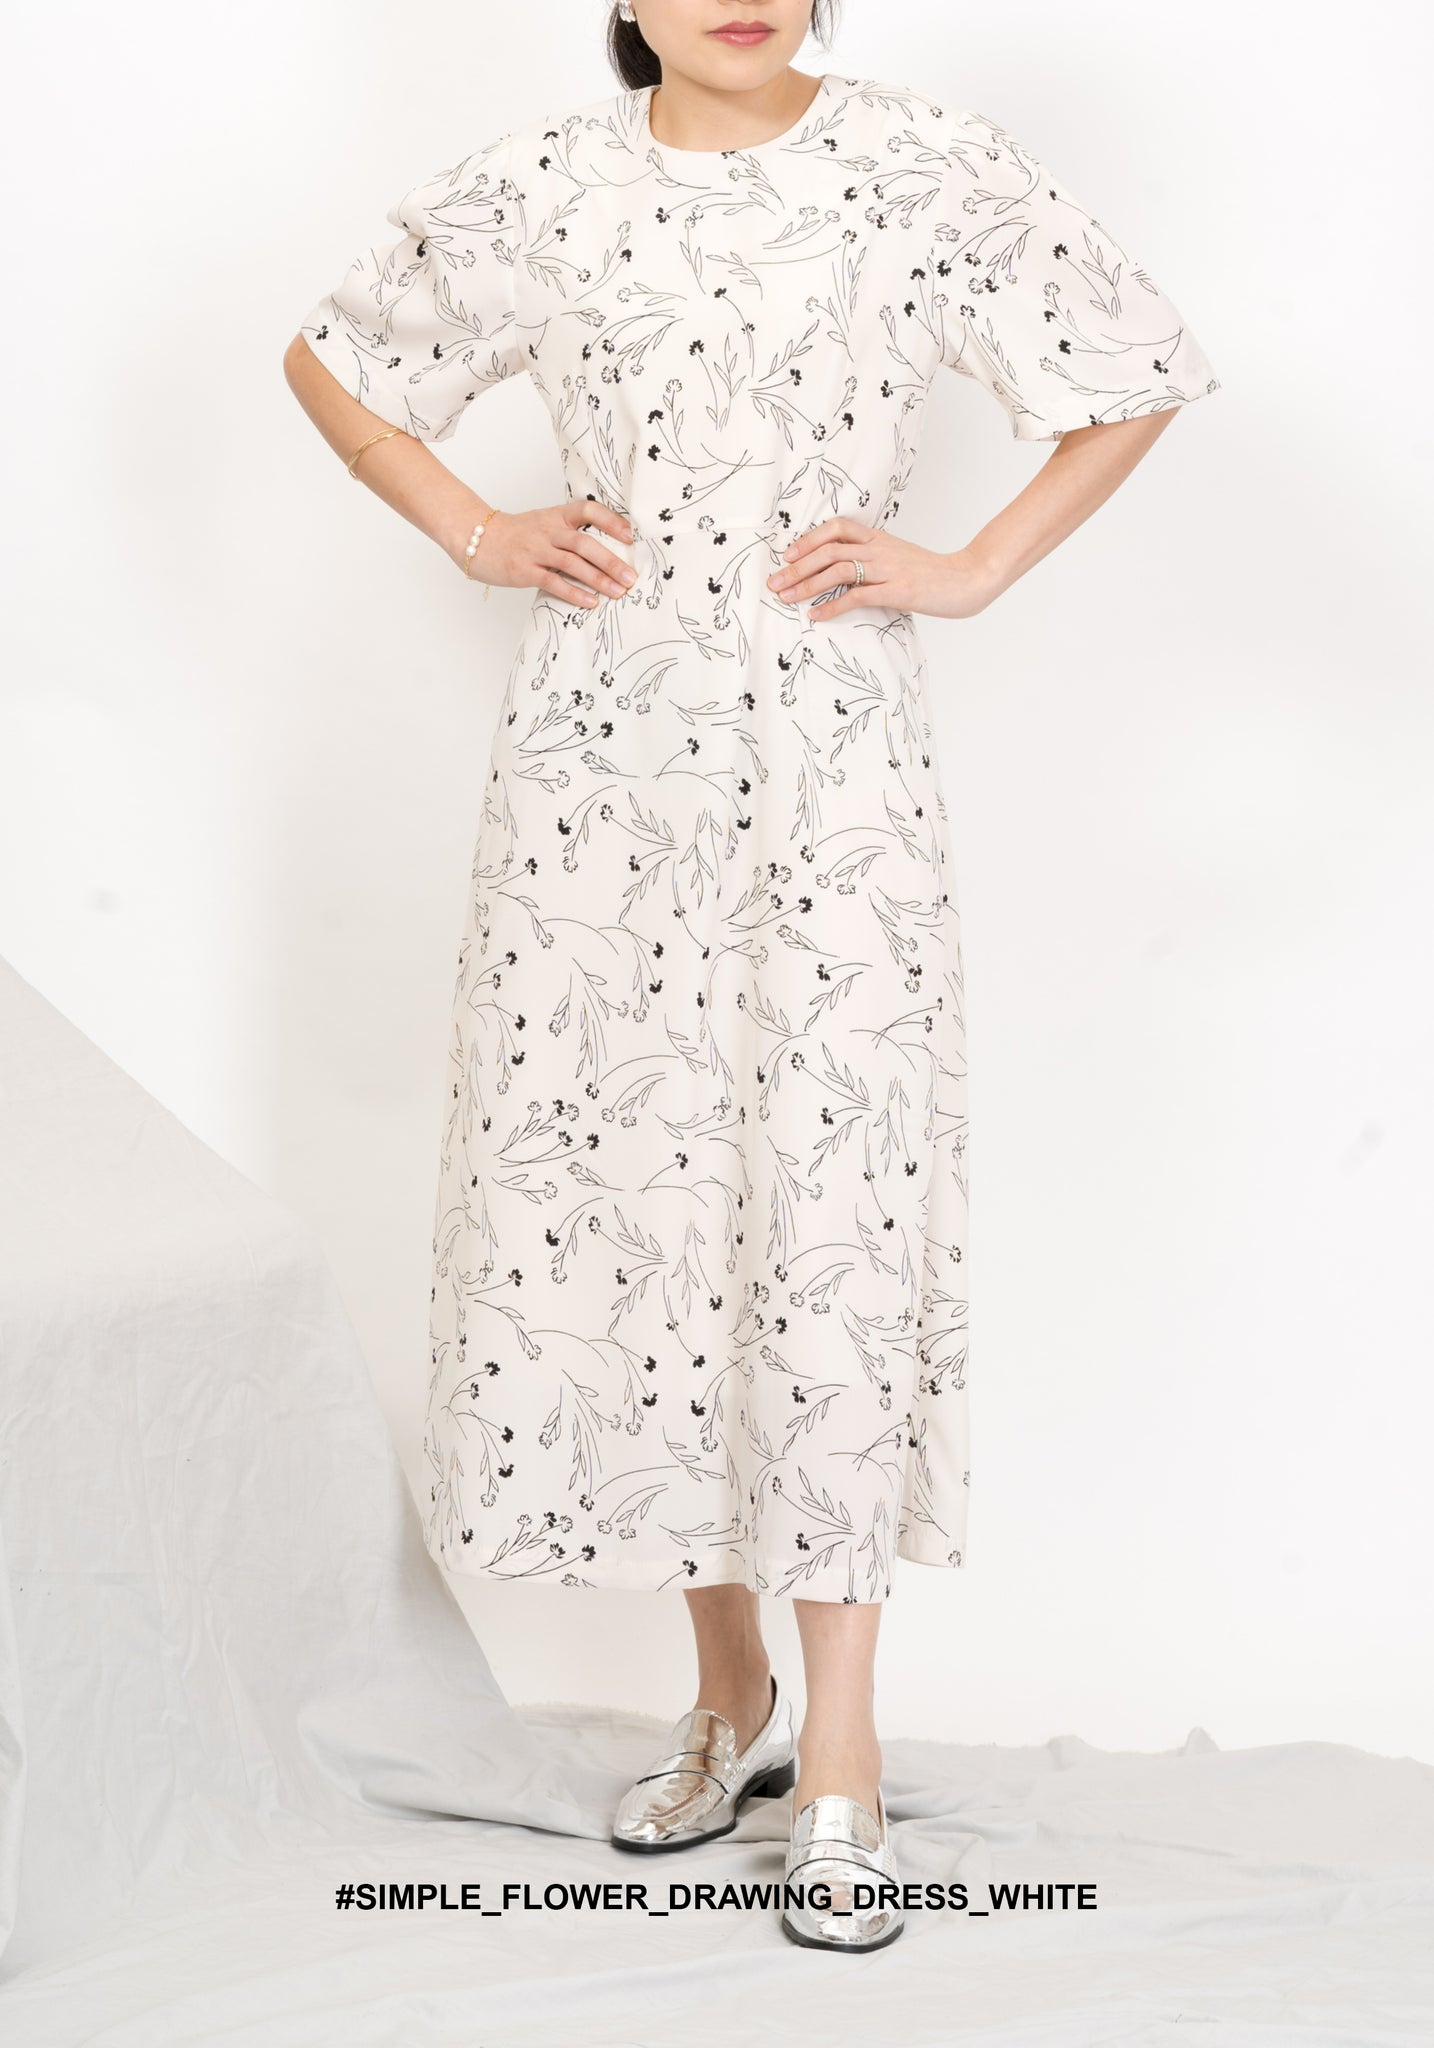 Simple Flower Drawing Dress White - whoami